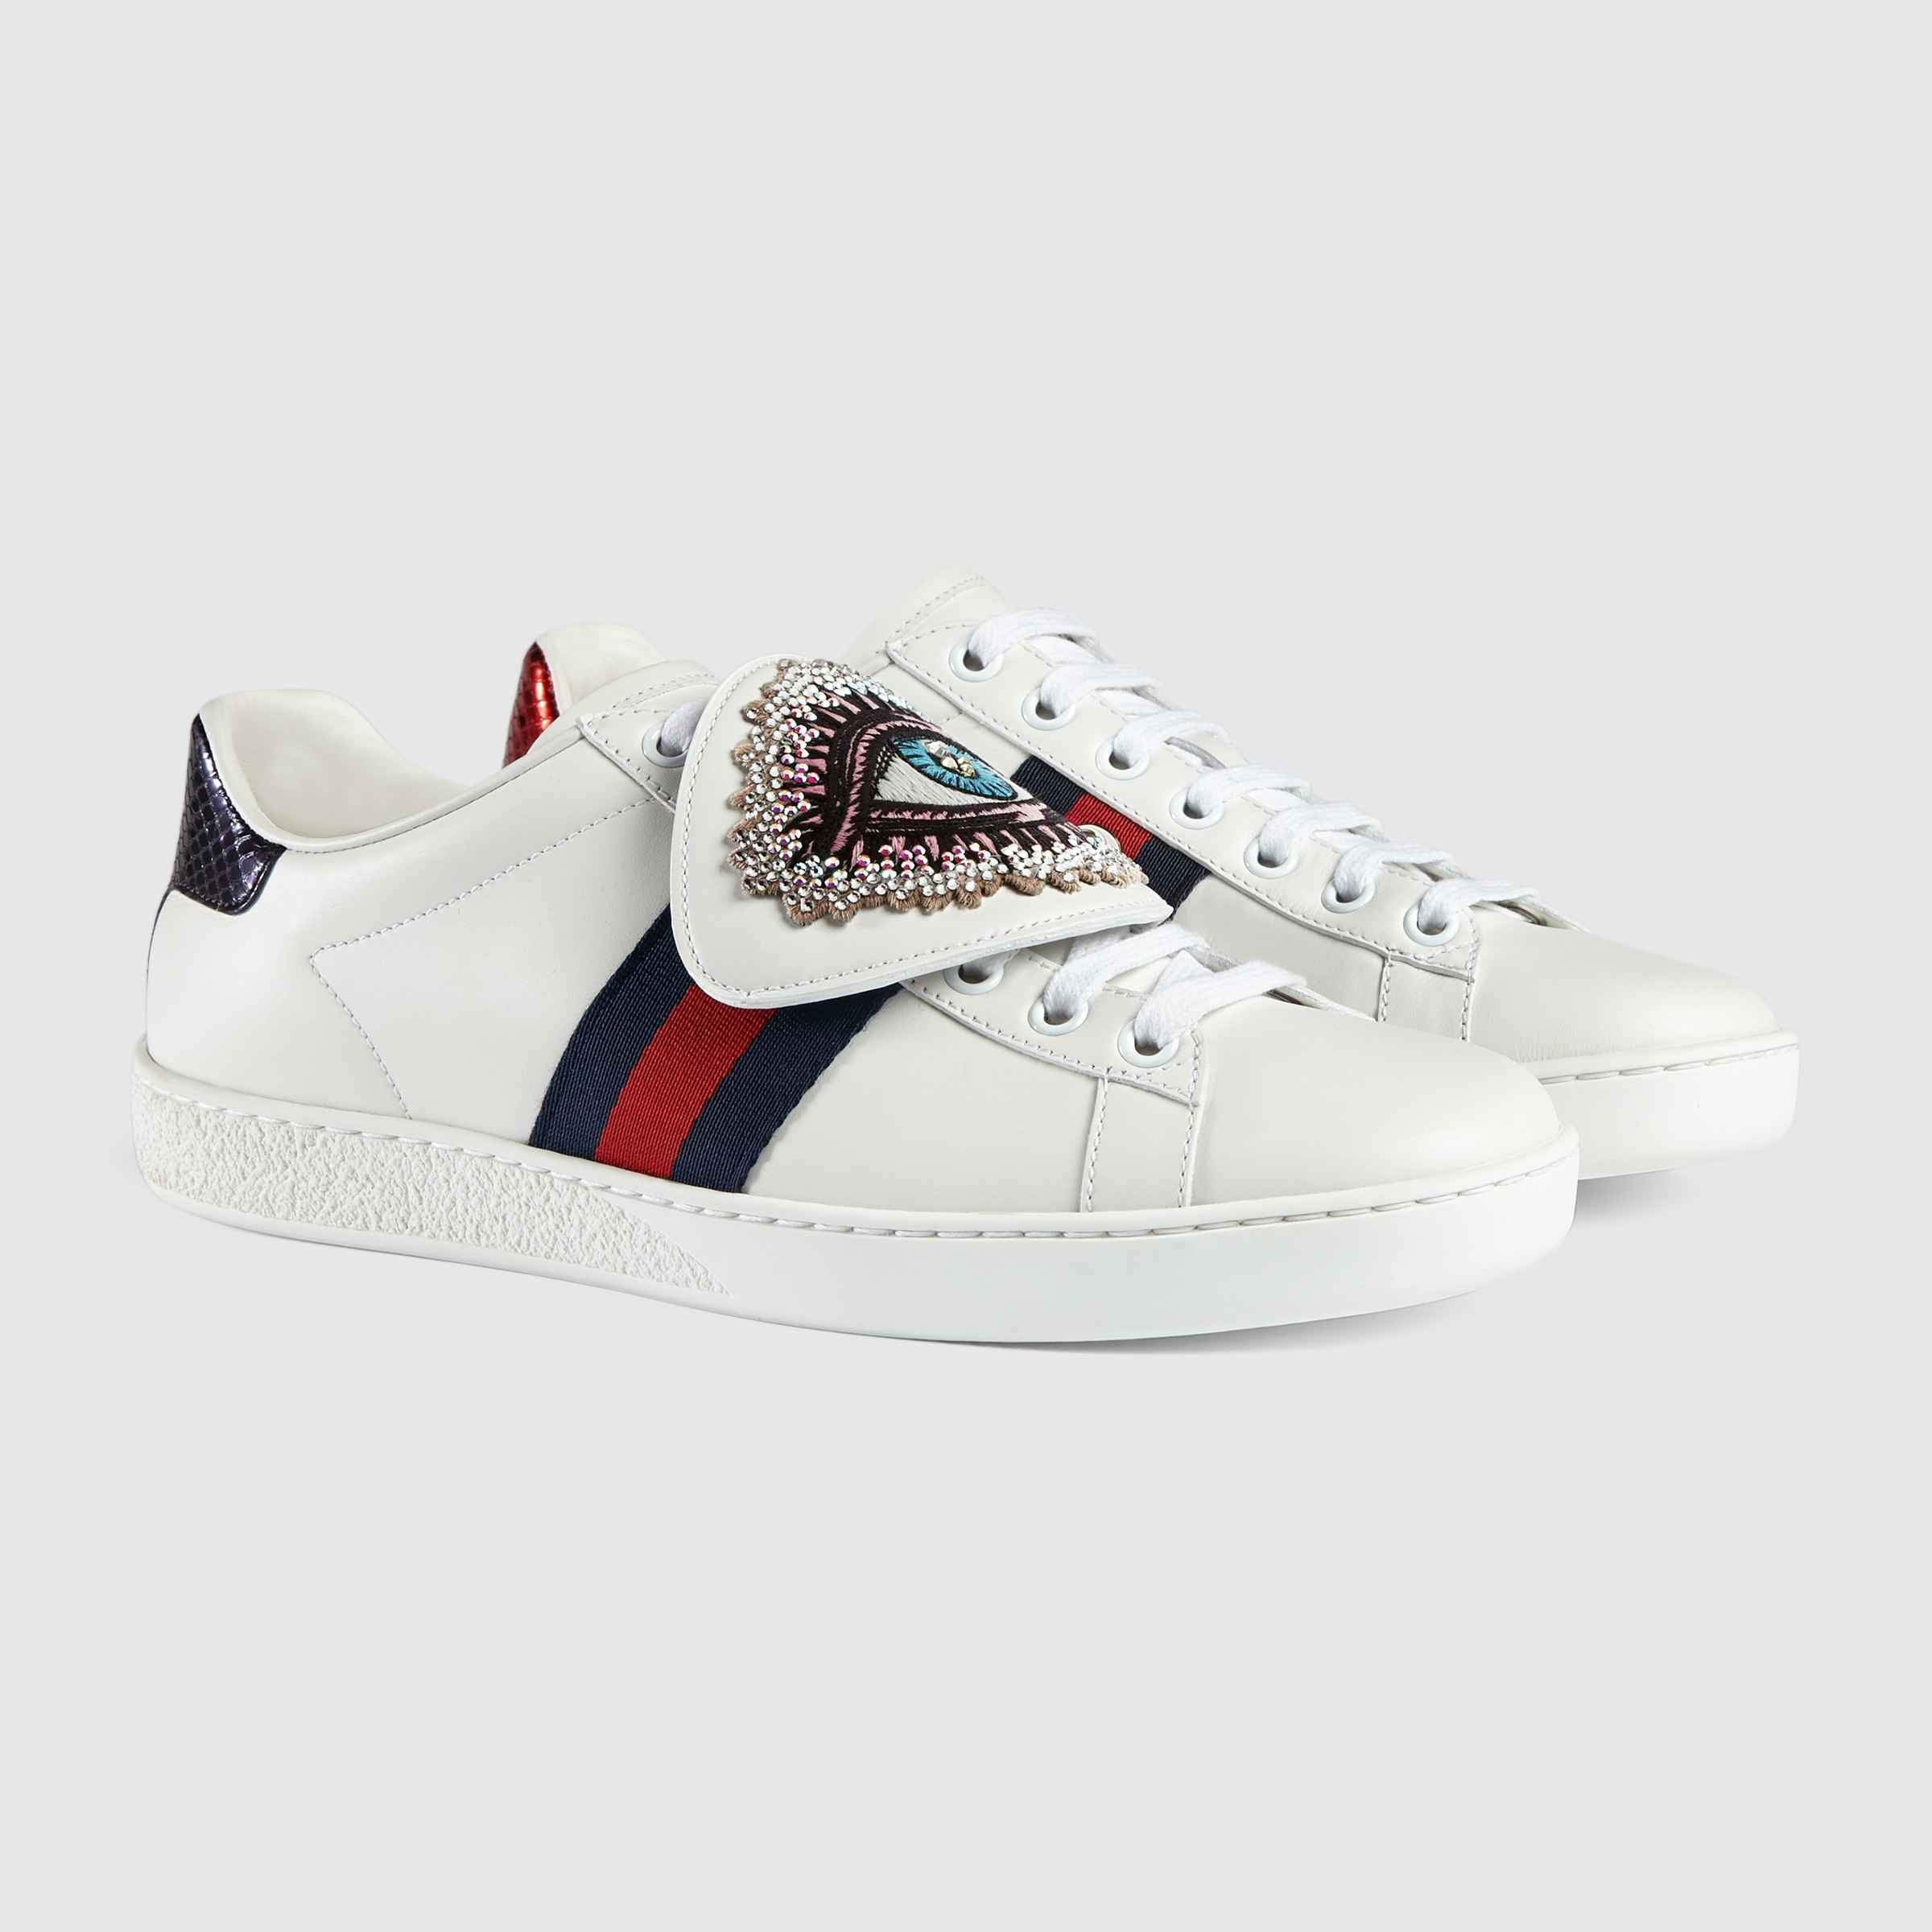 d9478a13579 Gucci Ace Eye Patch Women's Sneakers in 2019 | Products | Sneakers ...